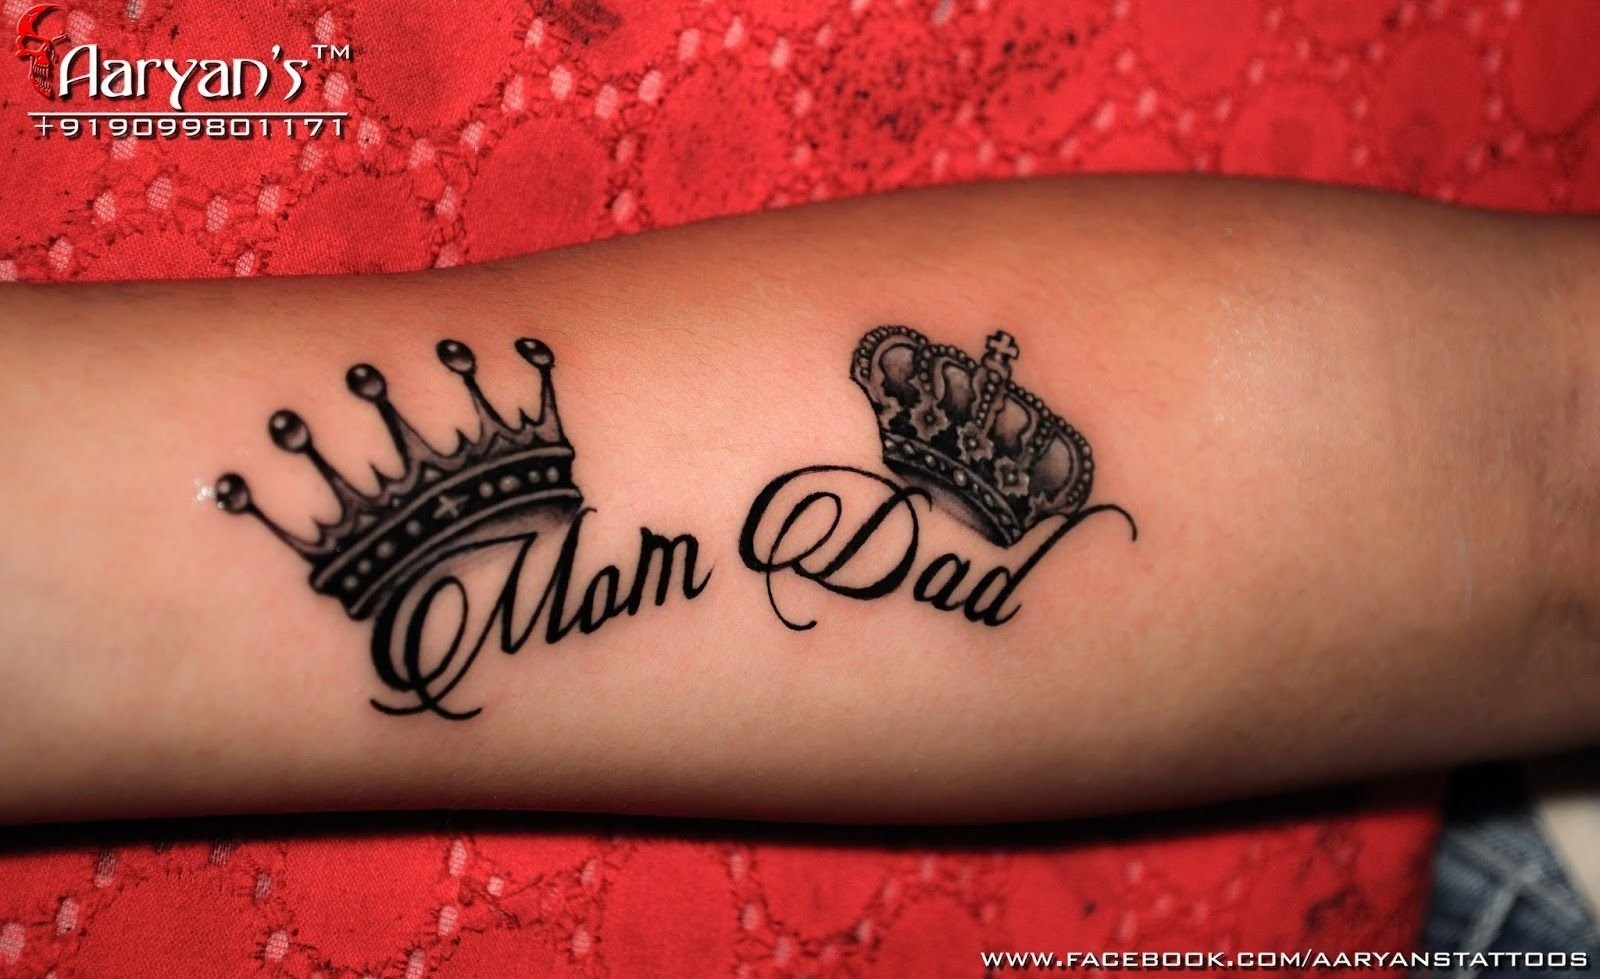 10 Lovable Mom And Dad Tattoo Ideas dsc 0012 editedcopy 1600x979 rushabh pinterest tattoo